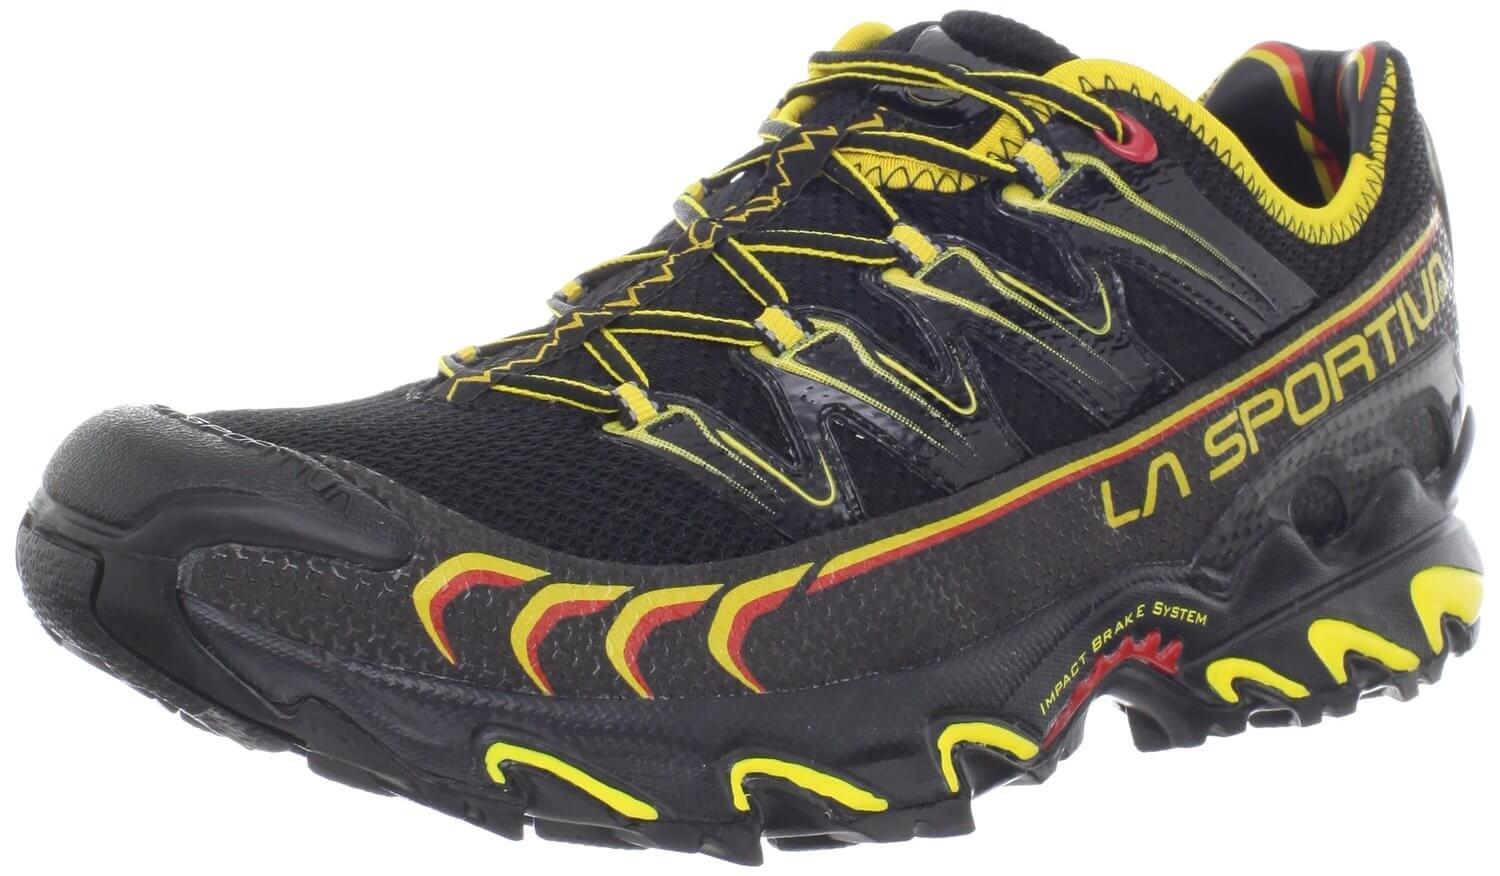 the La Sportiva Ultra Raptor shown from the front/side